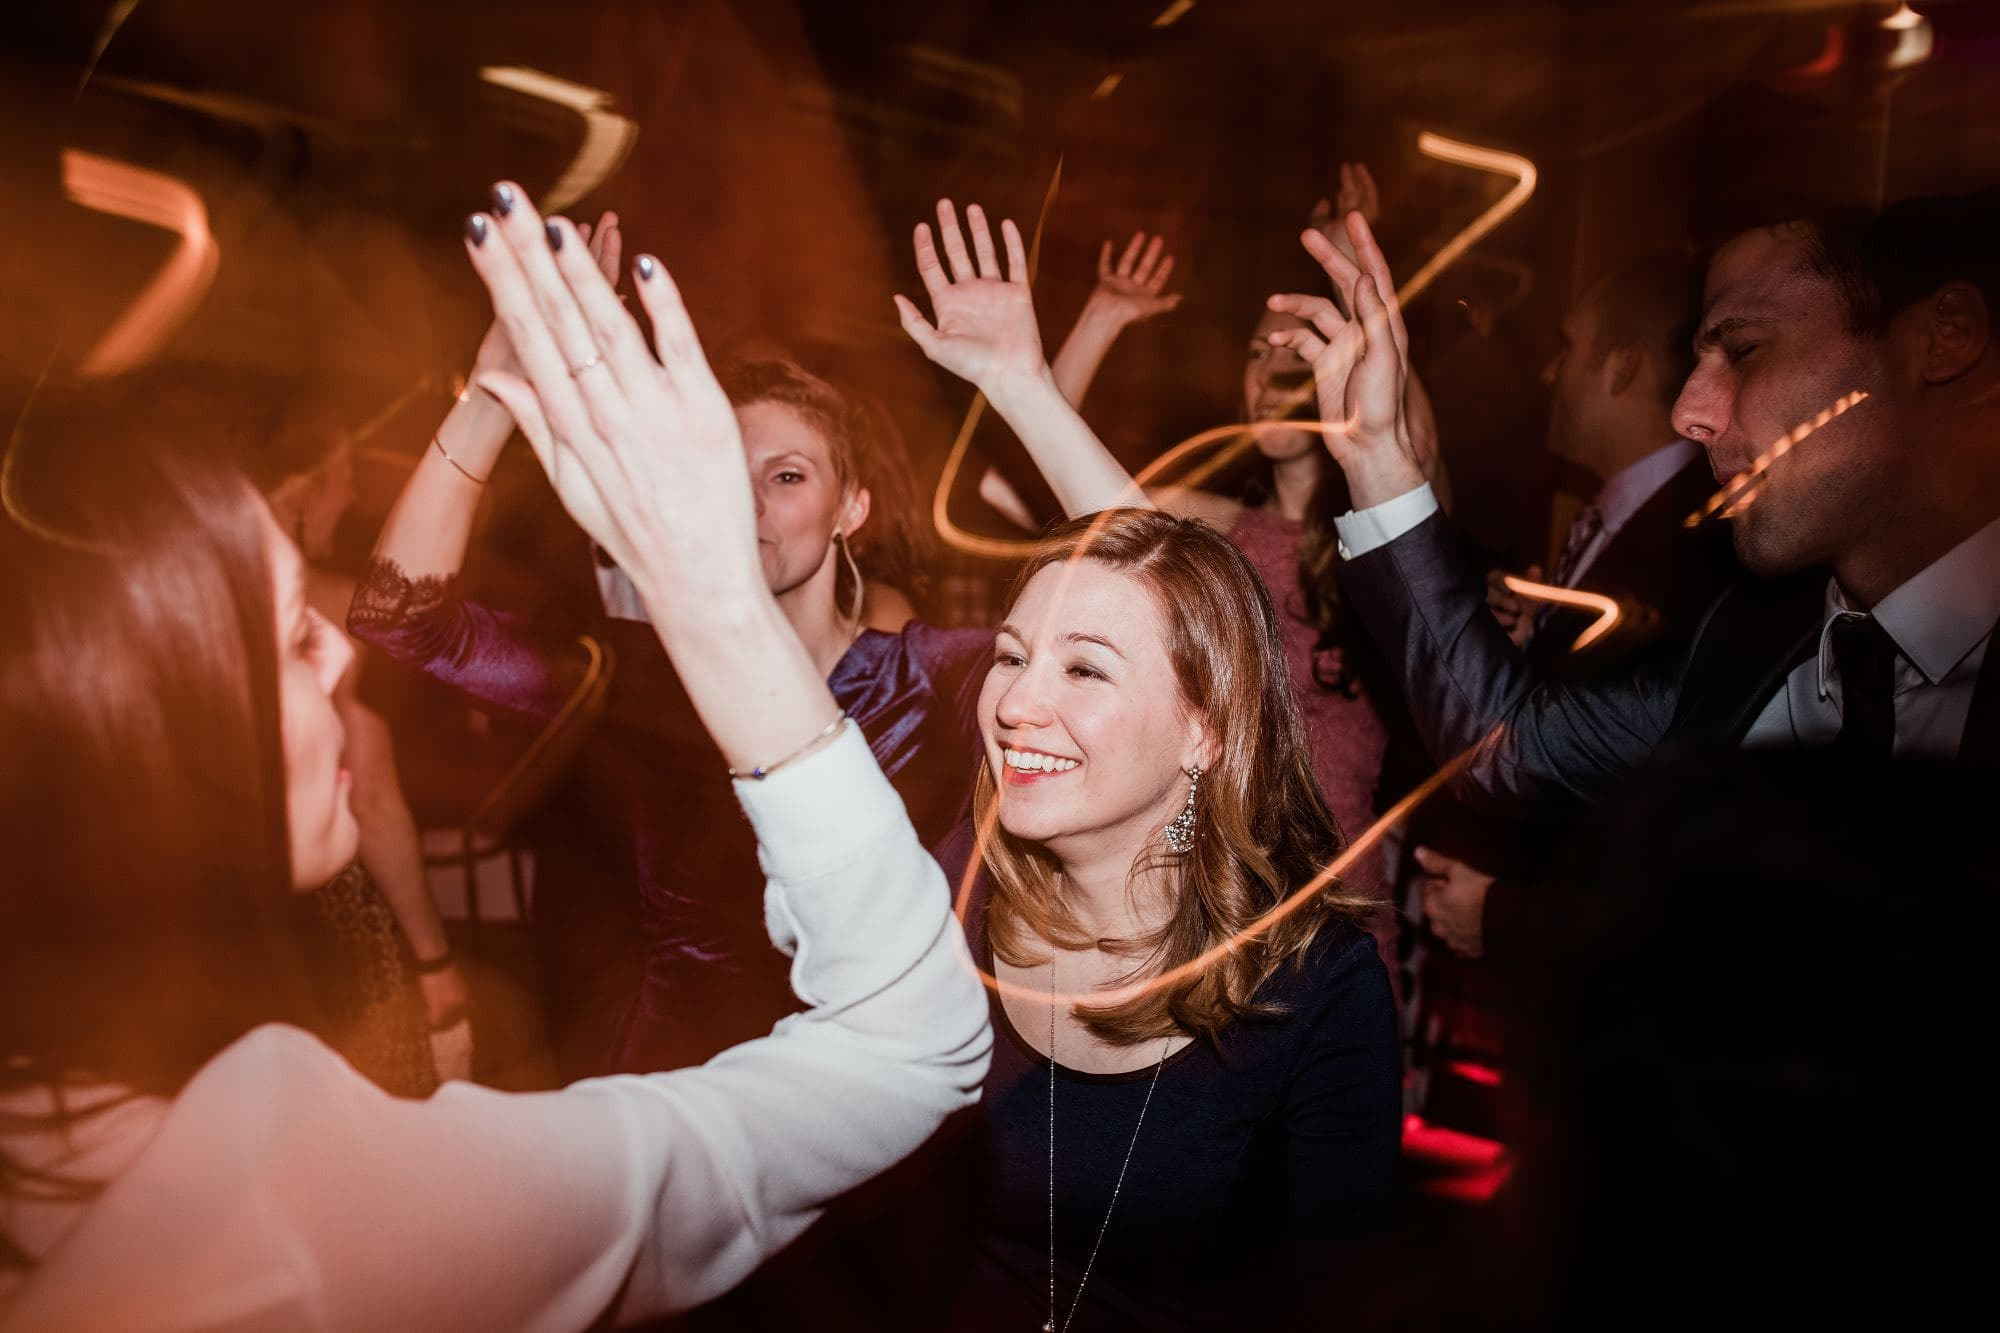 Guest smiling while people dance around her with hands up in the air blurred photo with light streaks